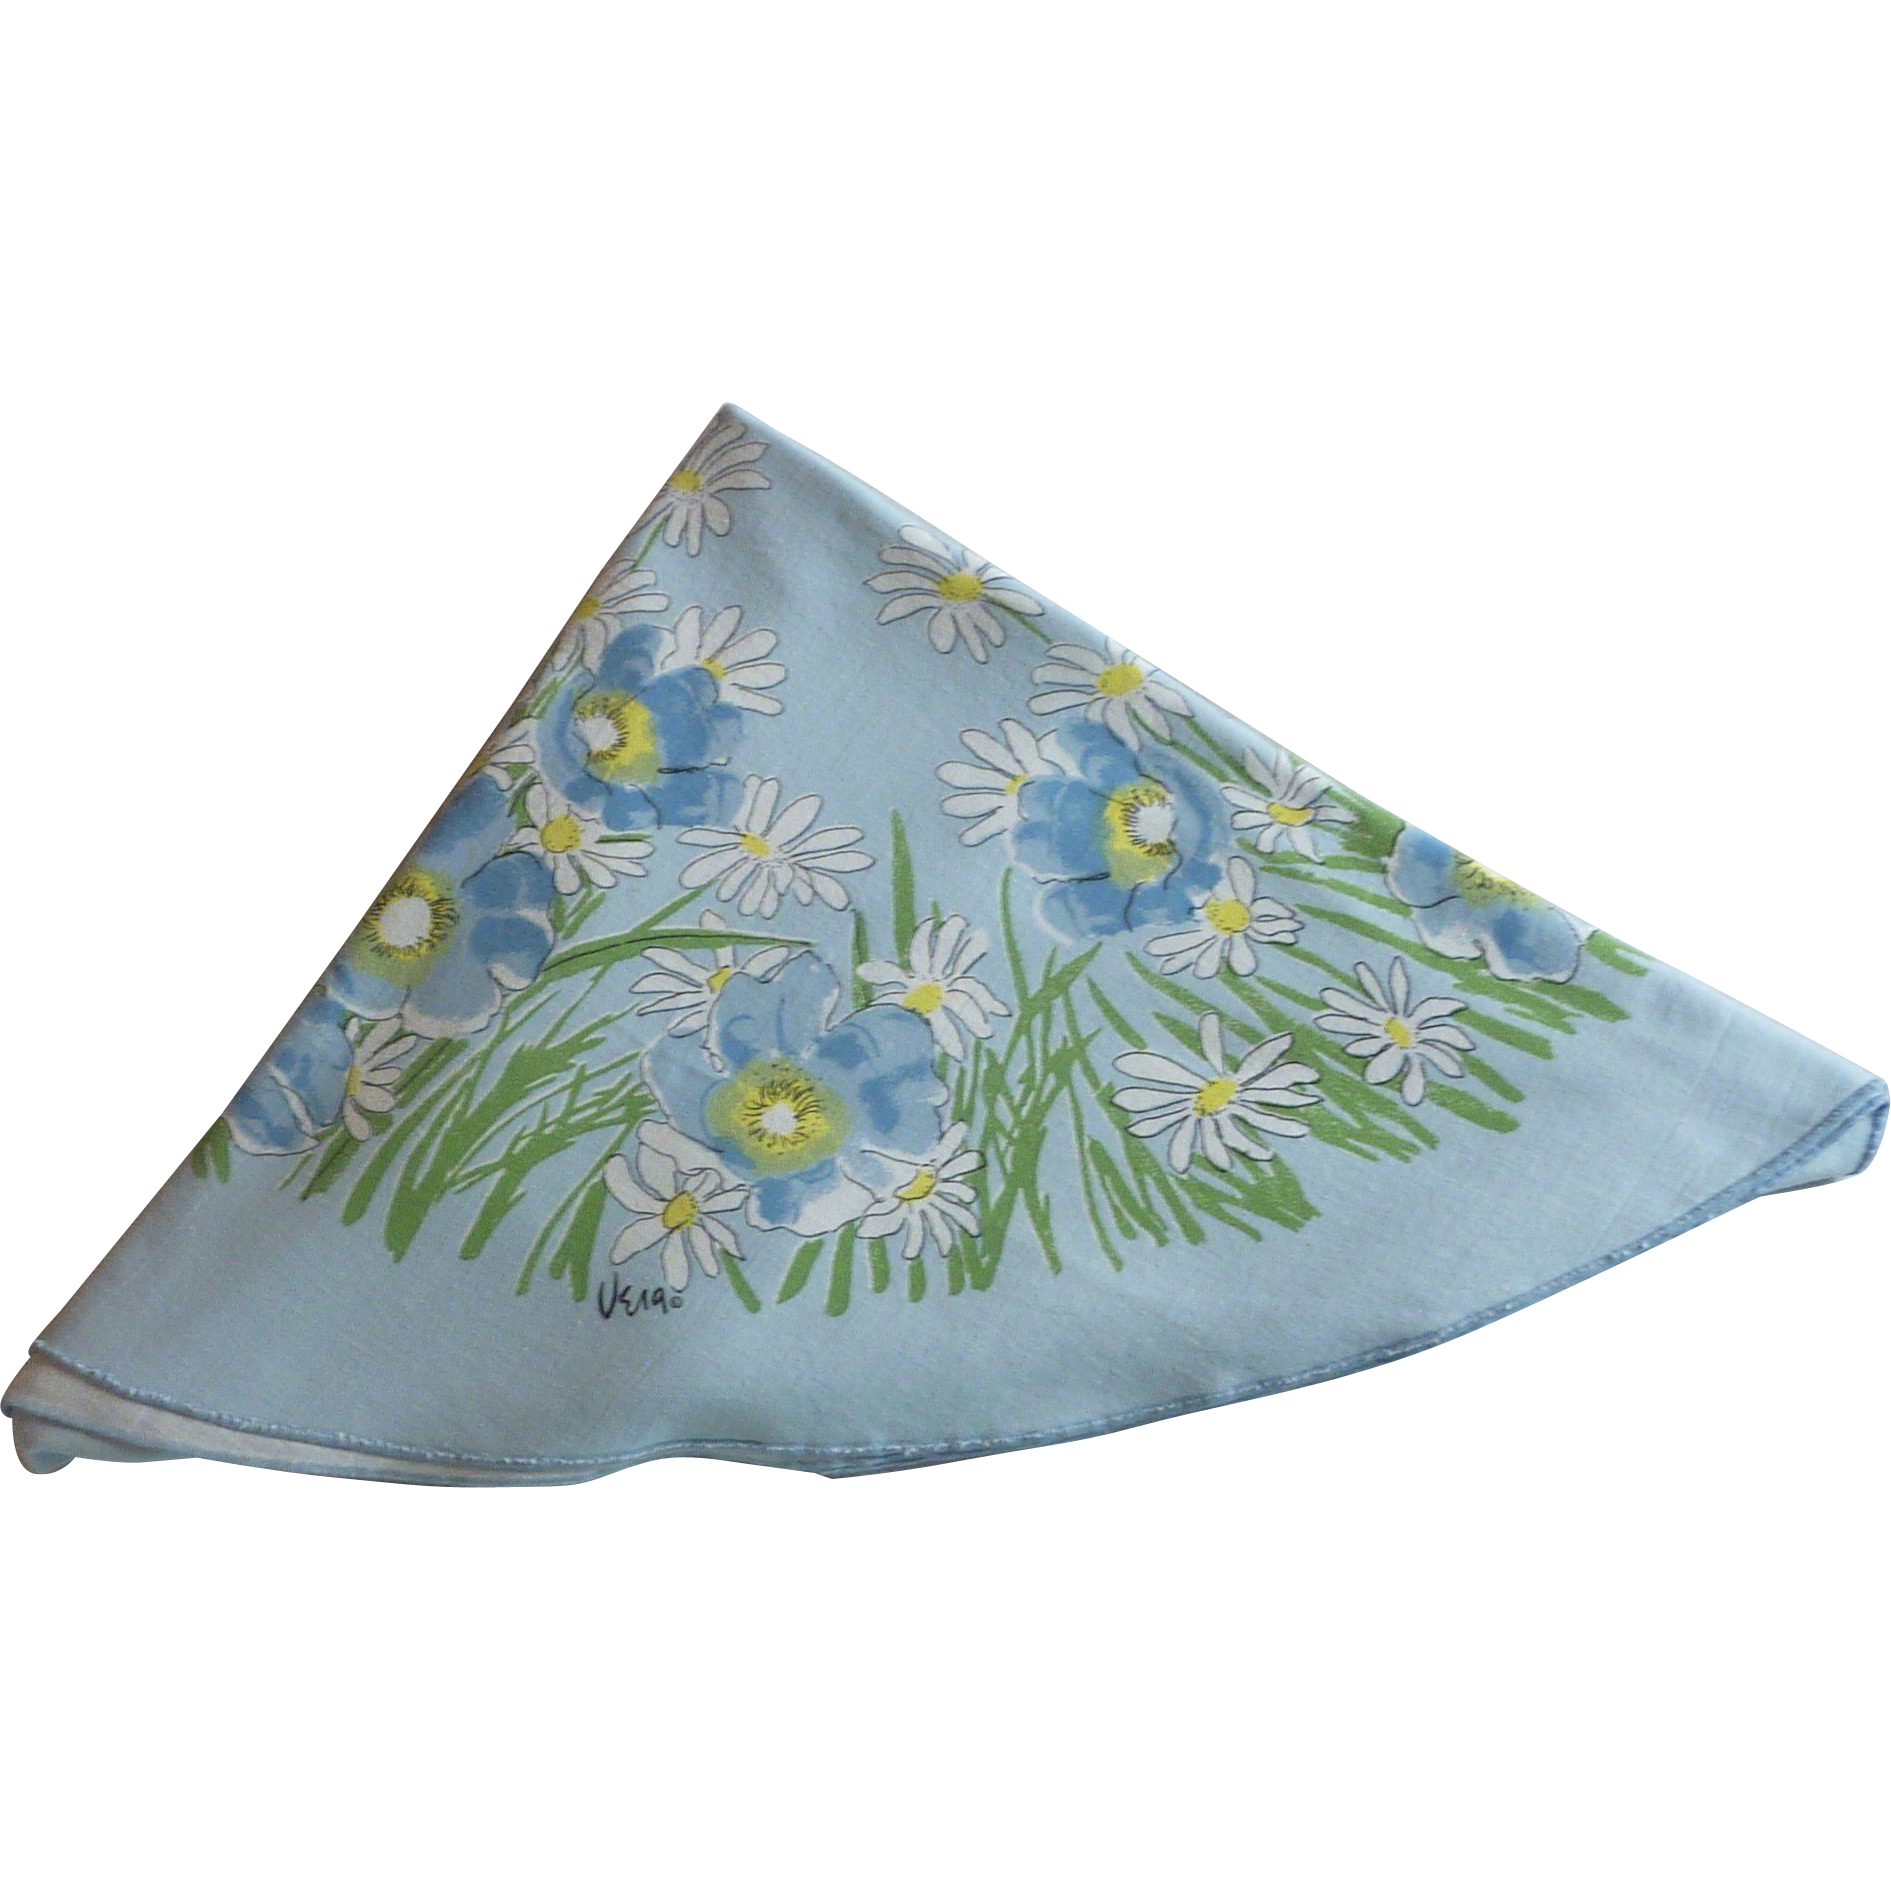 Vera Light Blue Oblong Tablecloth with Daisies and Poppies